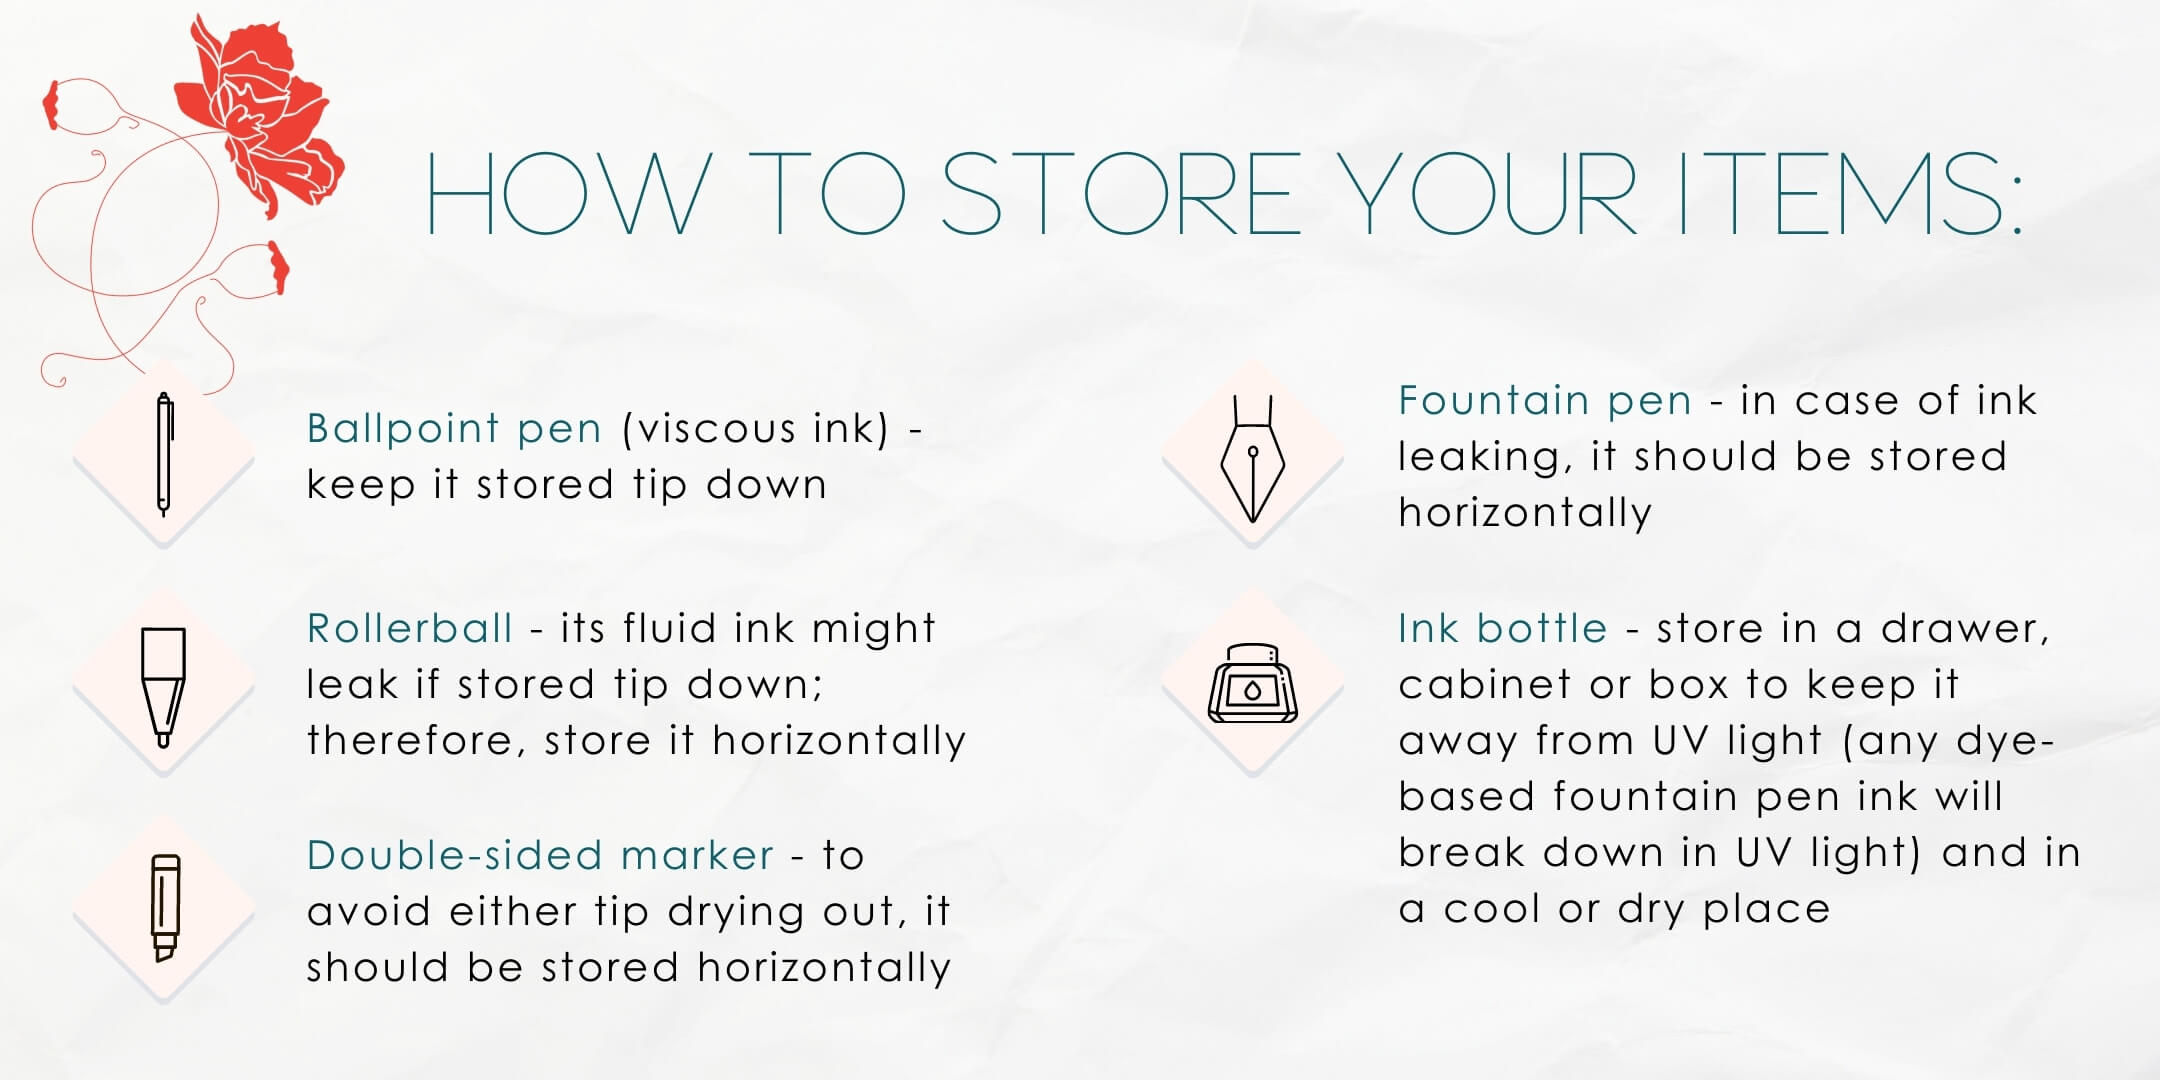 How to store your items